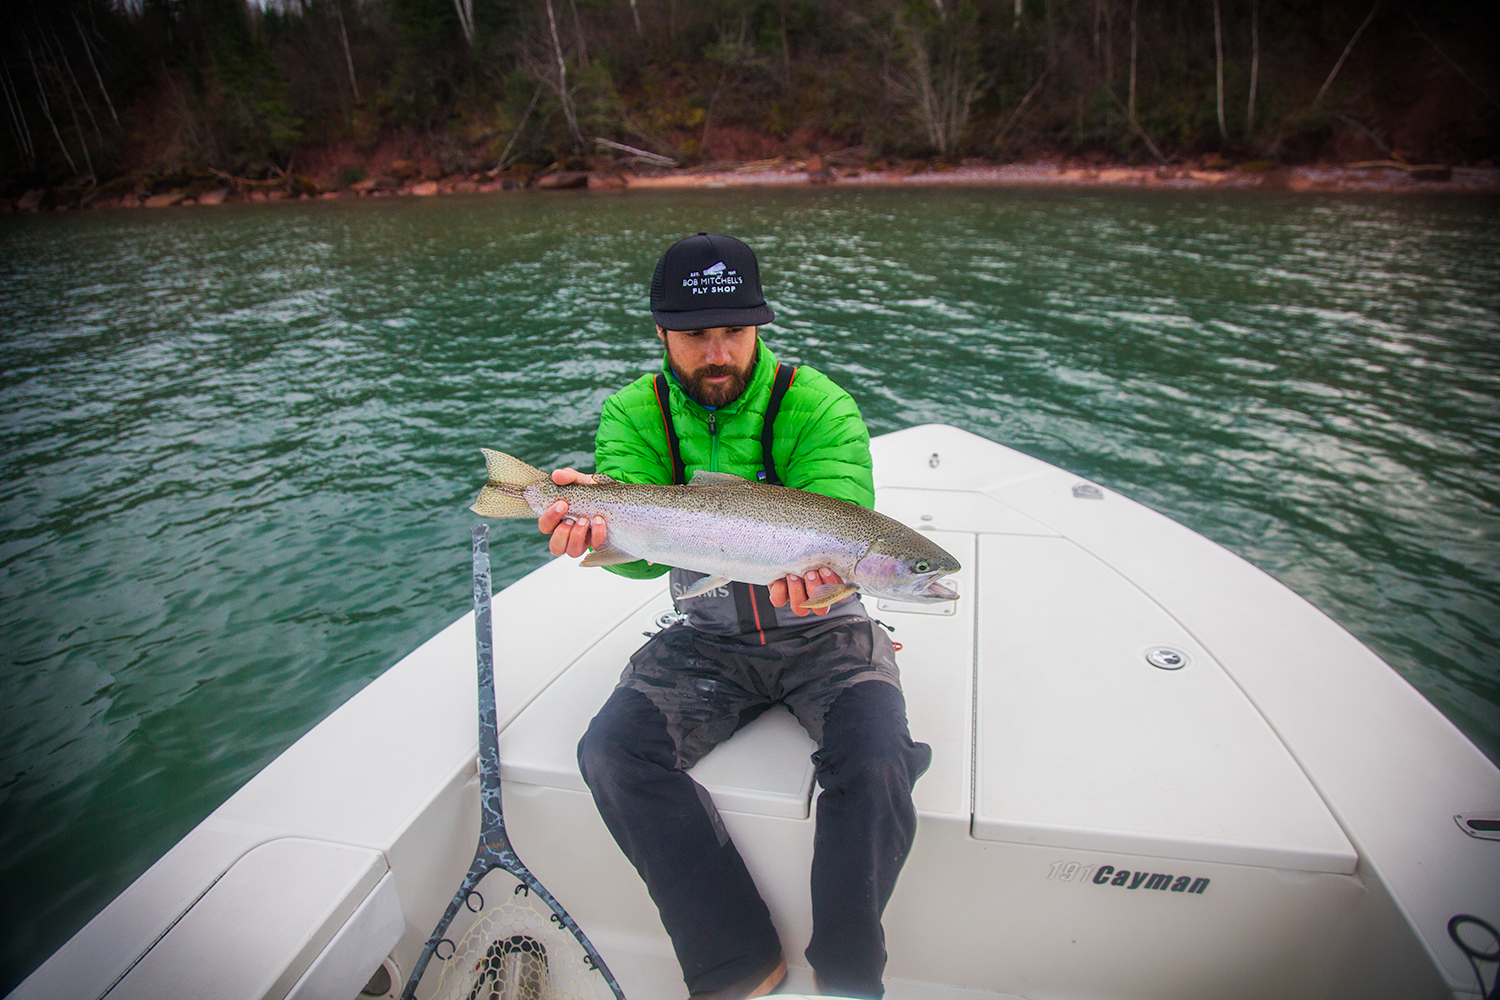 For a nearshore casting trip on light tackle or fly for a shot at big browns, steelhead, and other species, contact luke@freshcoastangling.com